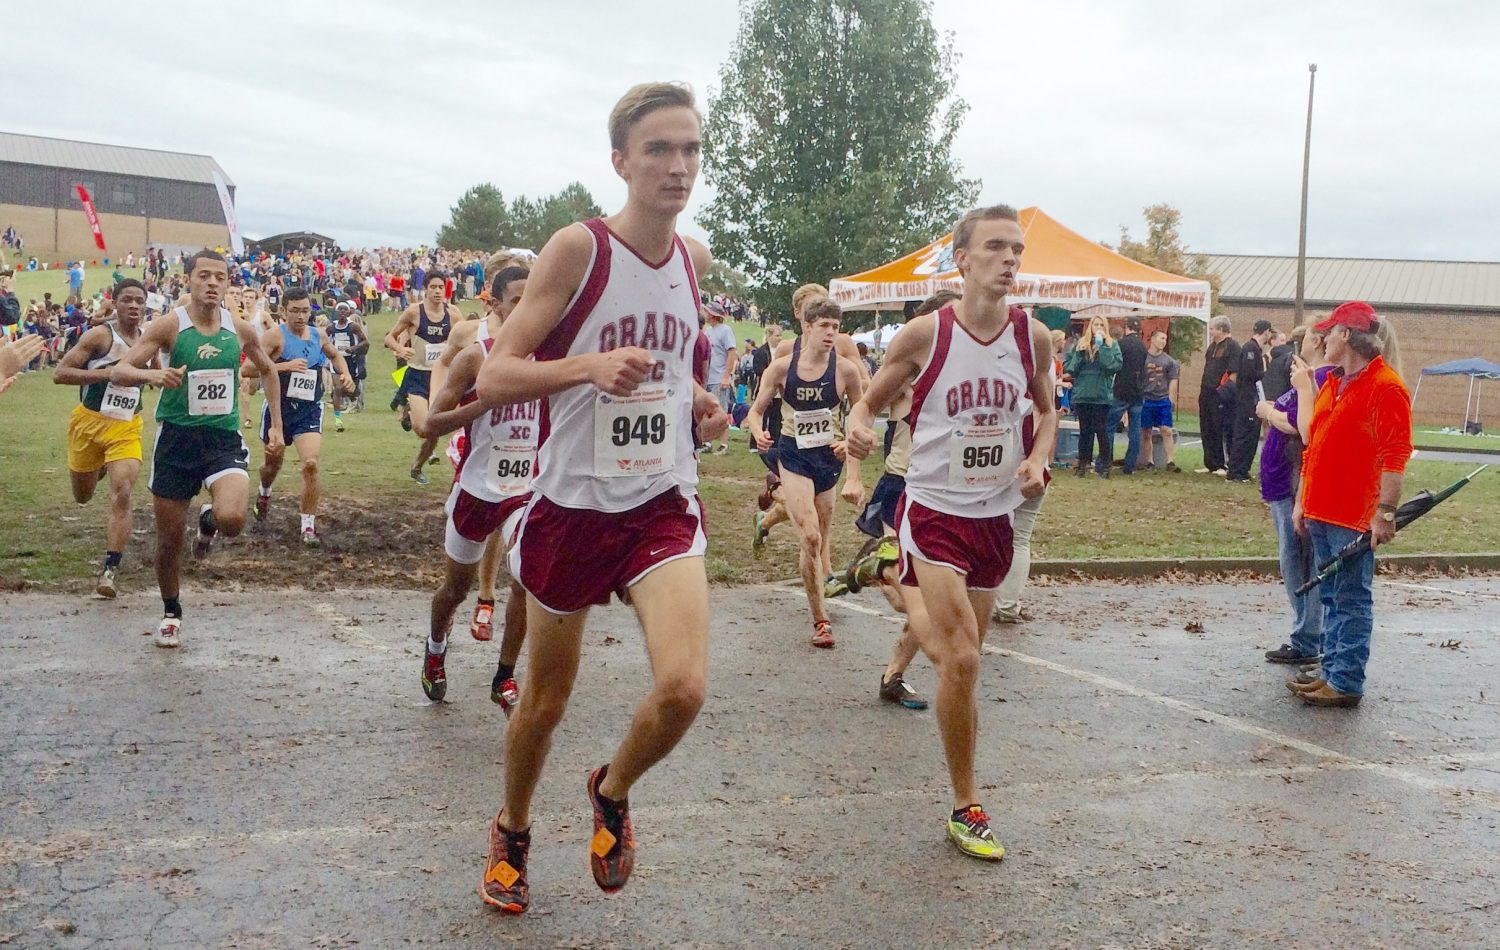 Graham+%28right%29+and+Anders+Russell+%28left%29+lead+the+boys+toward+the+finish+line+during+the+state+meet.+